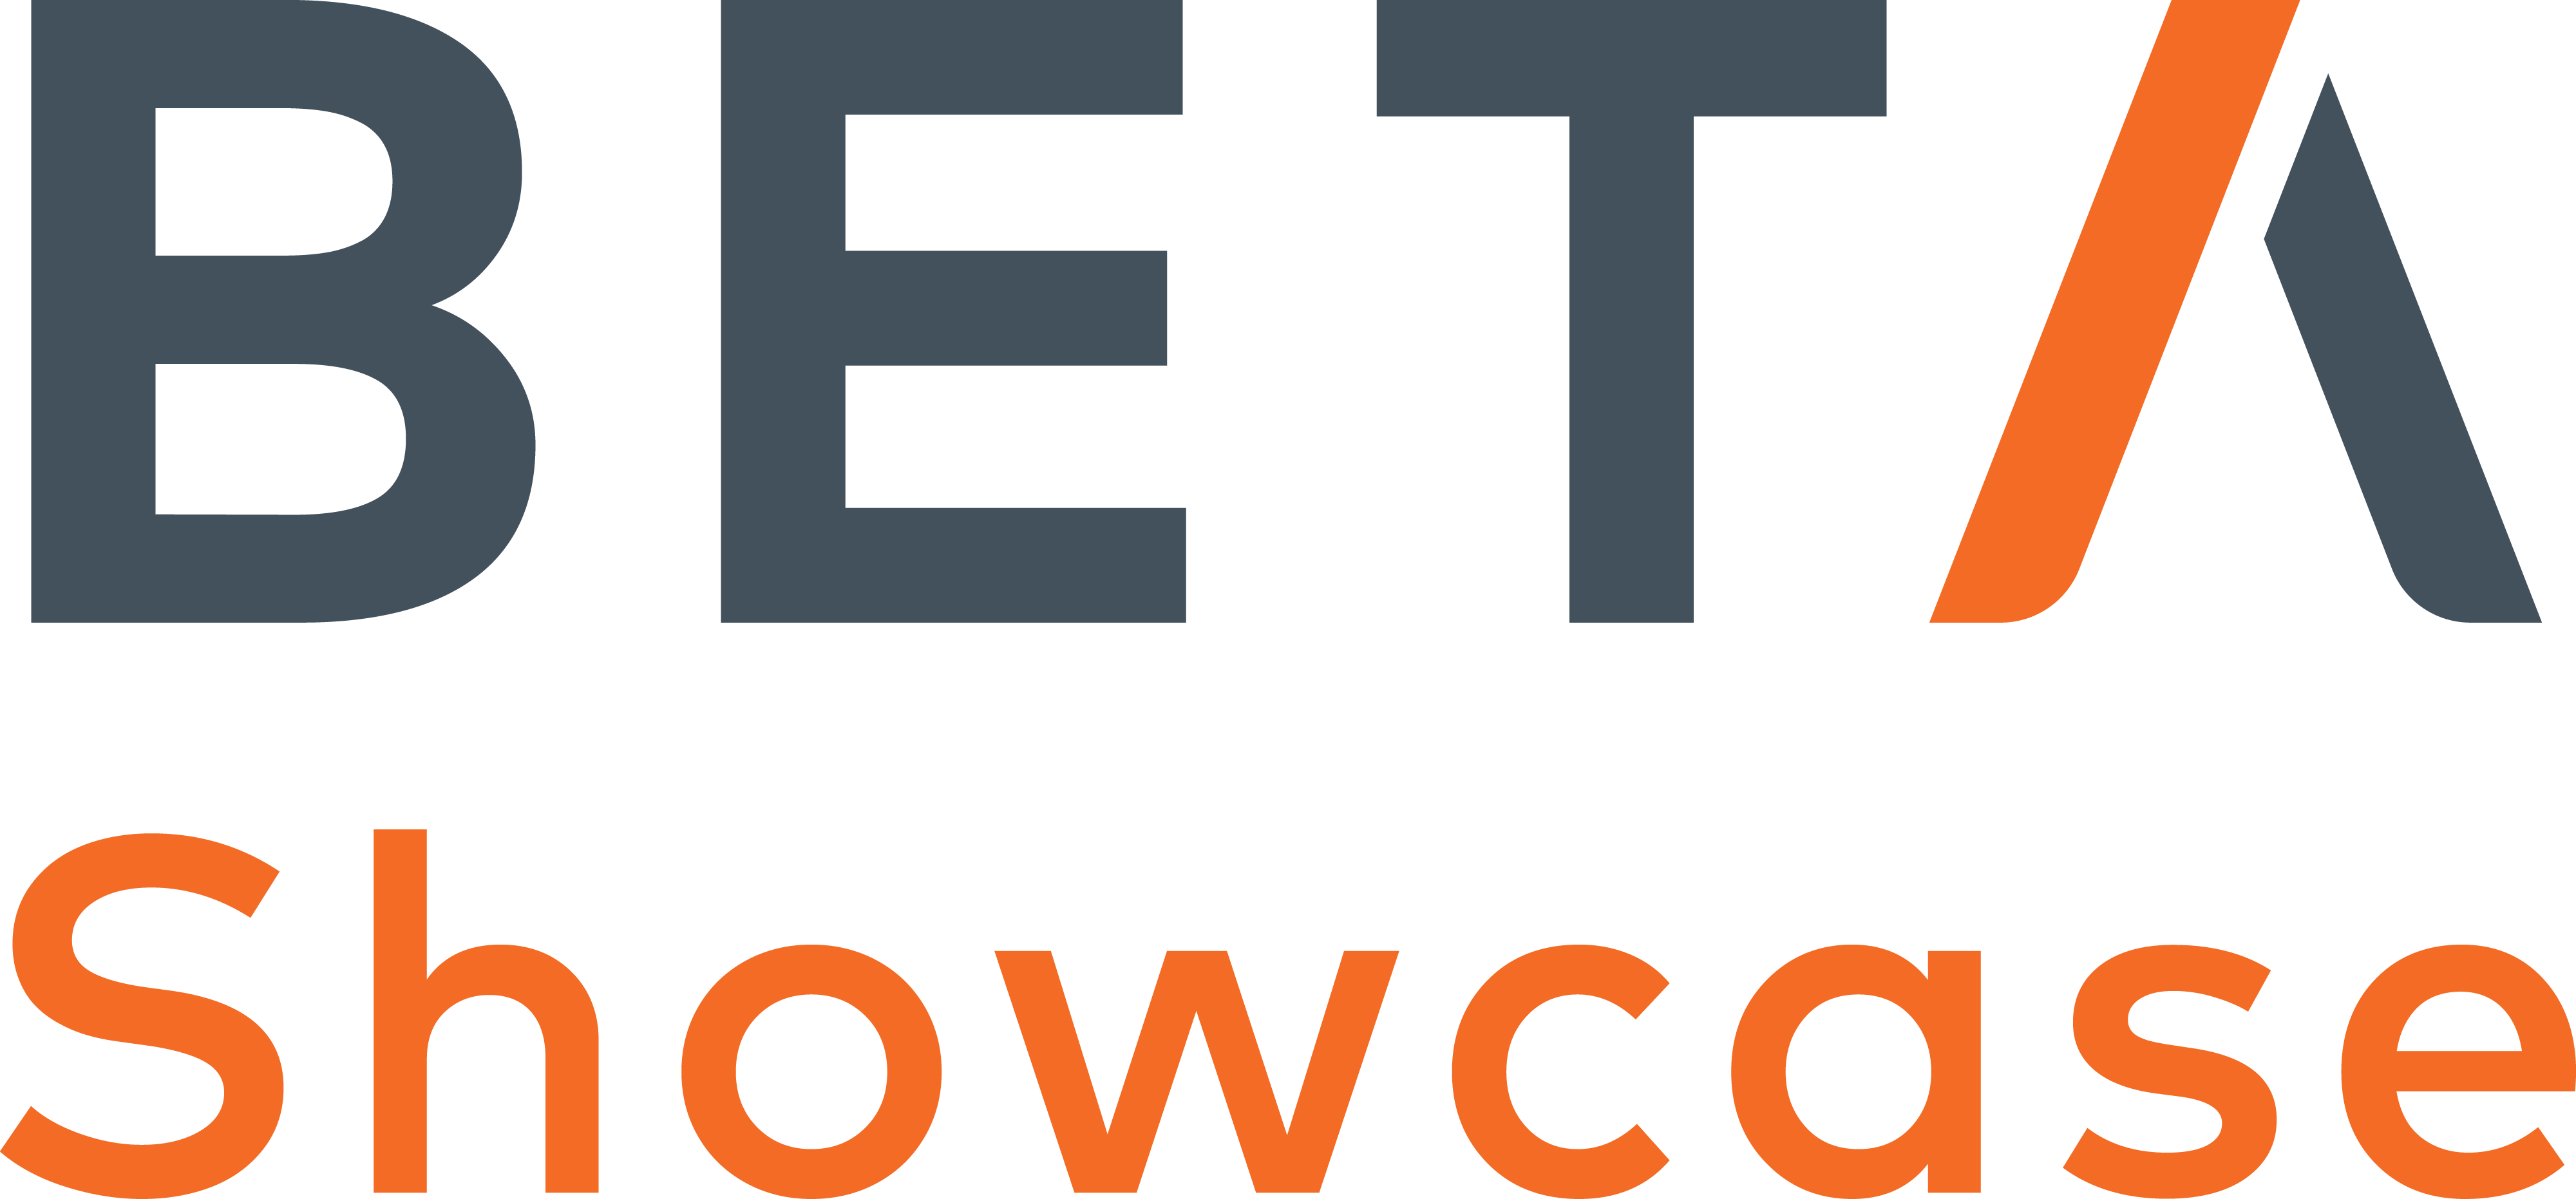 BETA.MN Showcase Logo